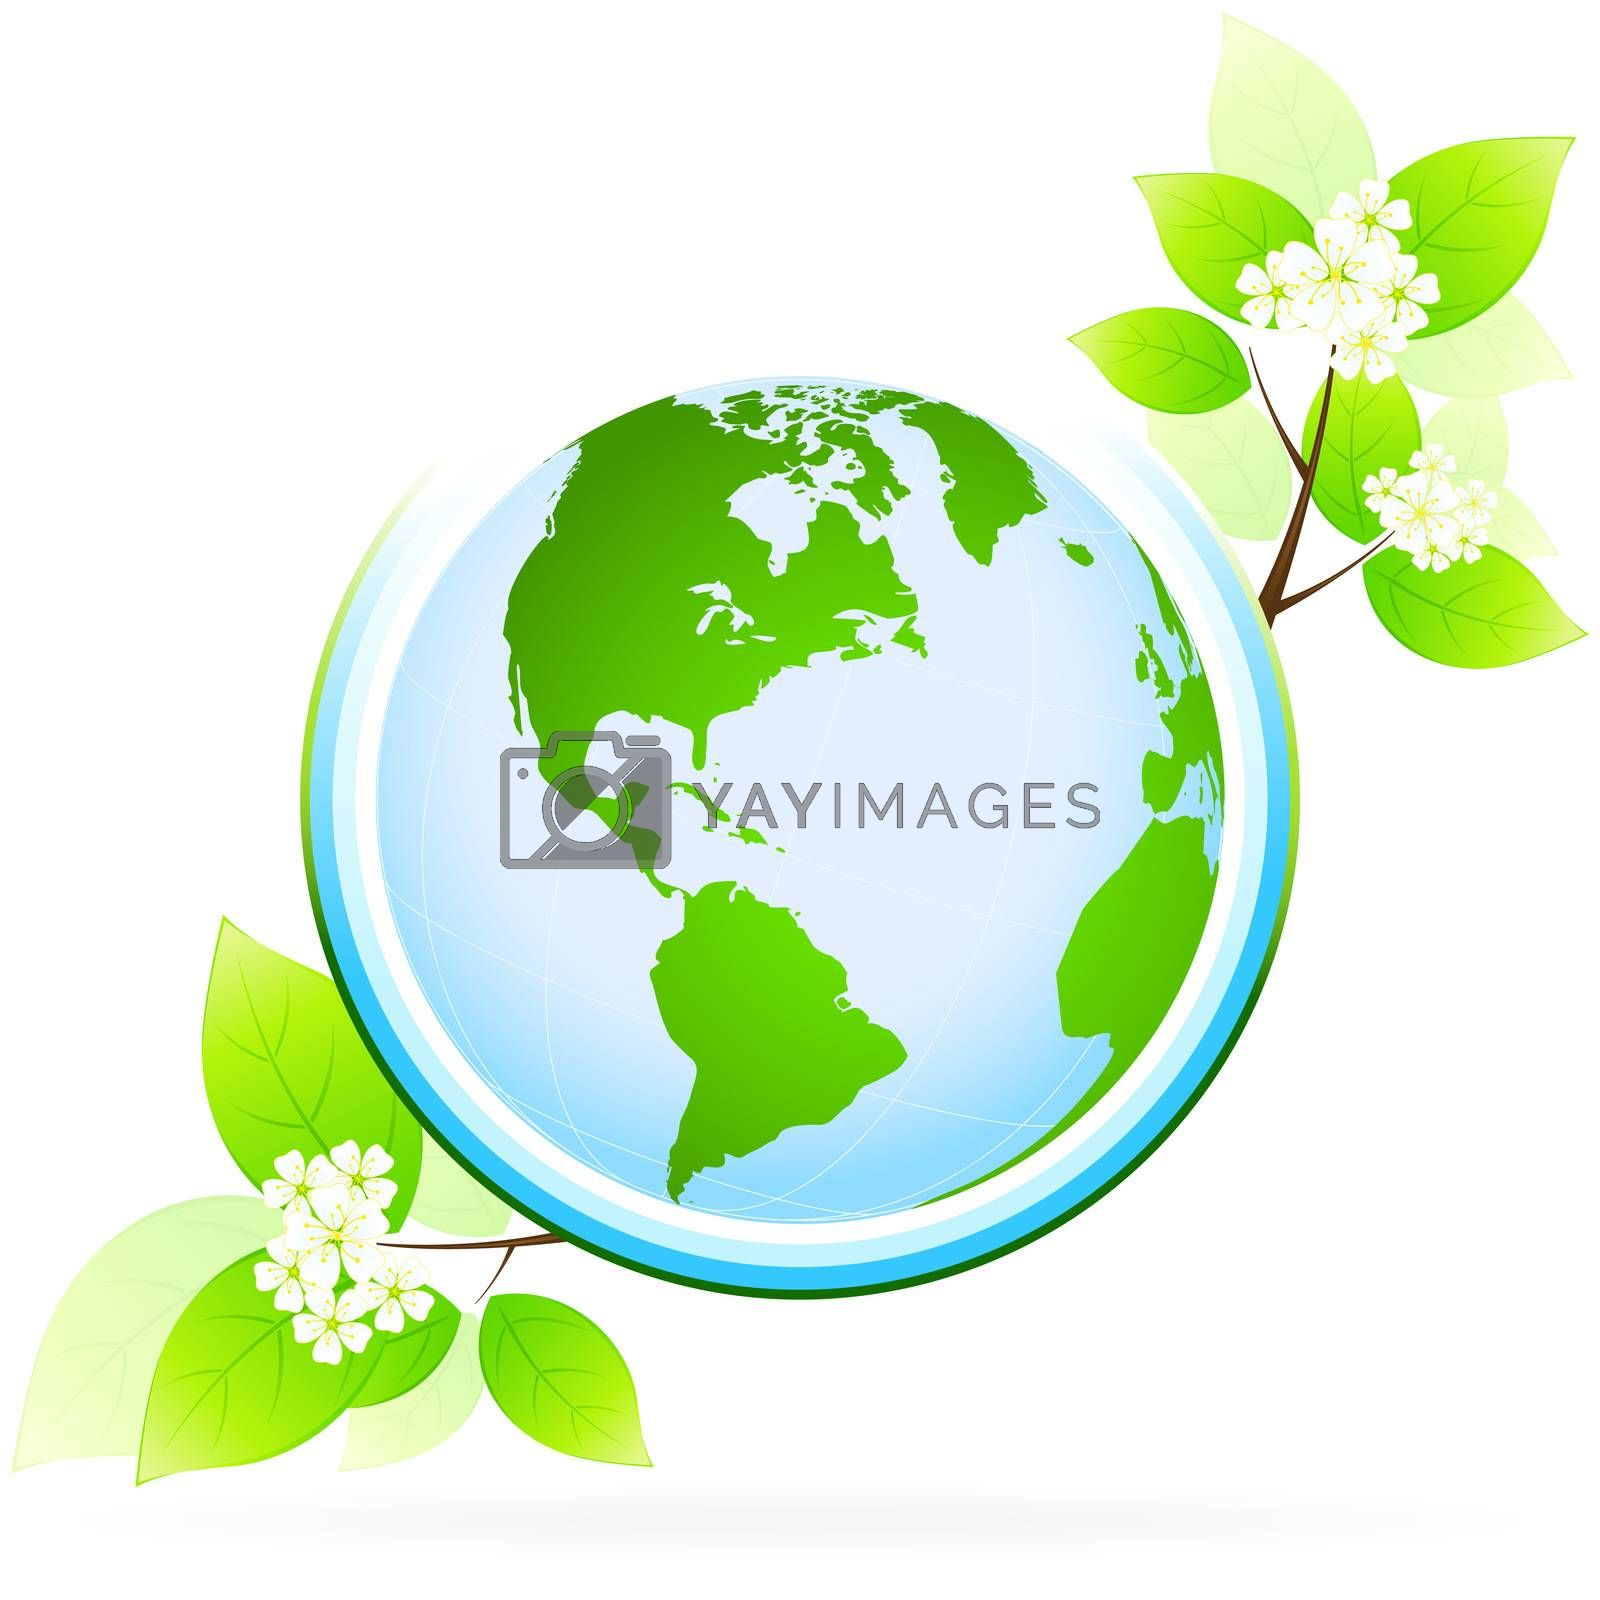 Green planet icon by WaD